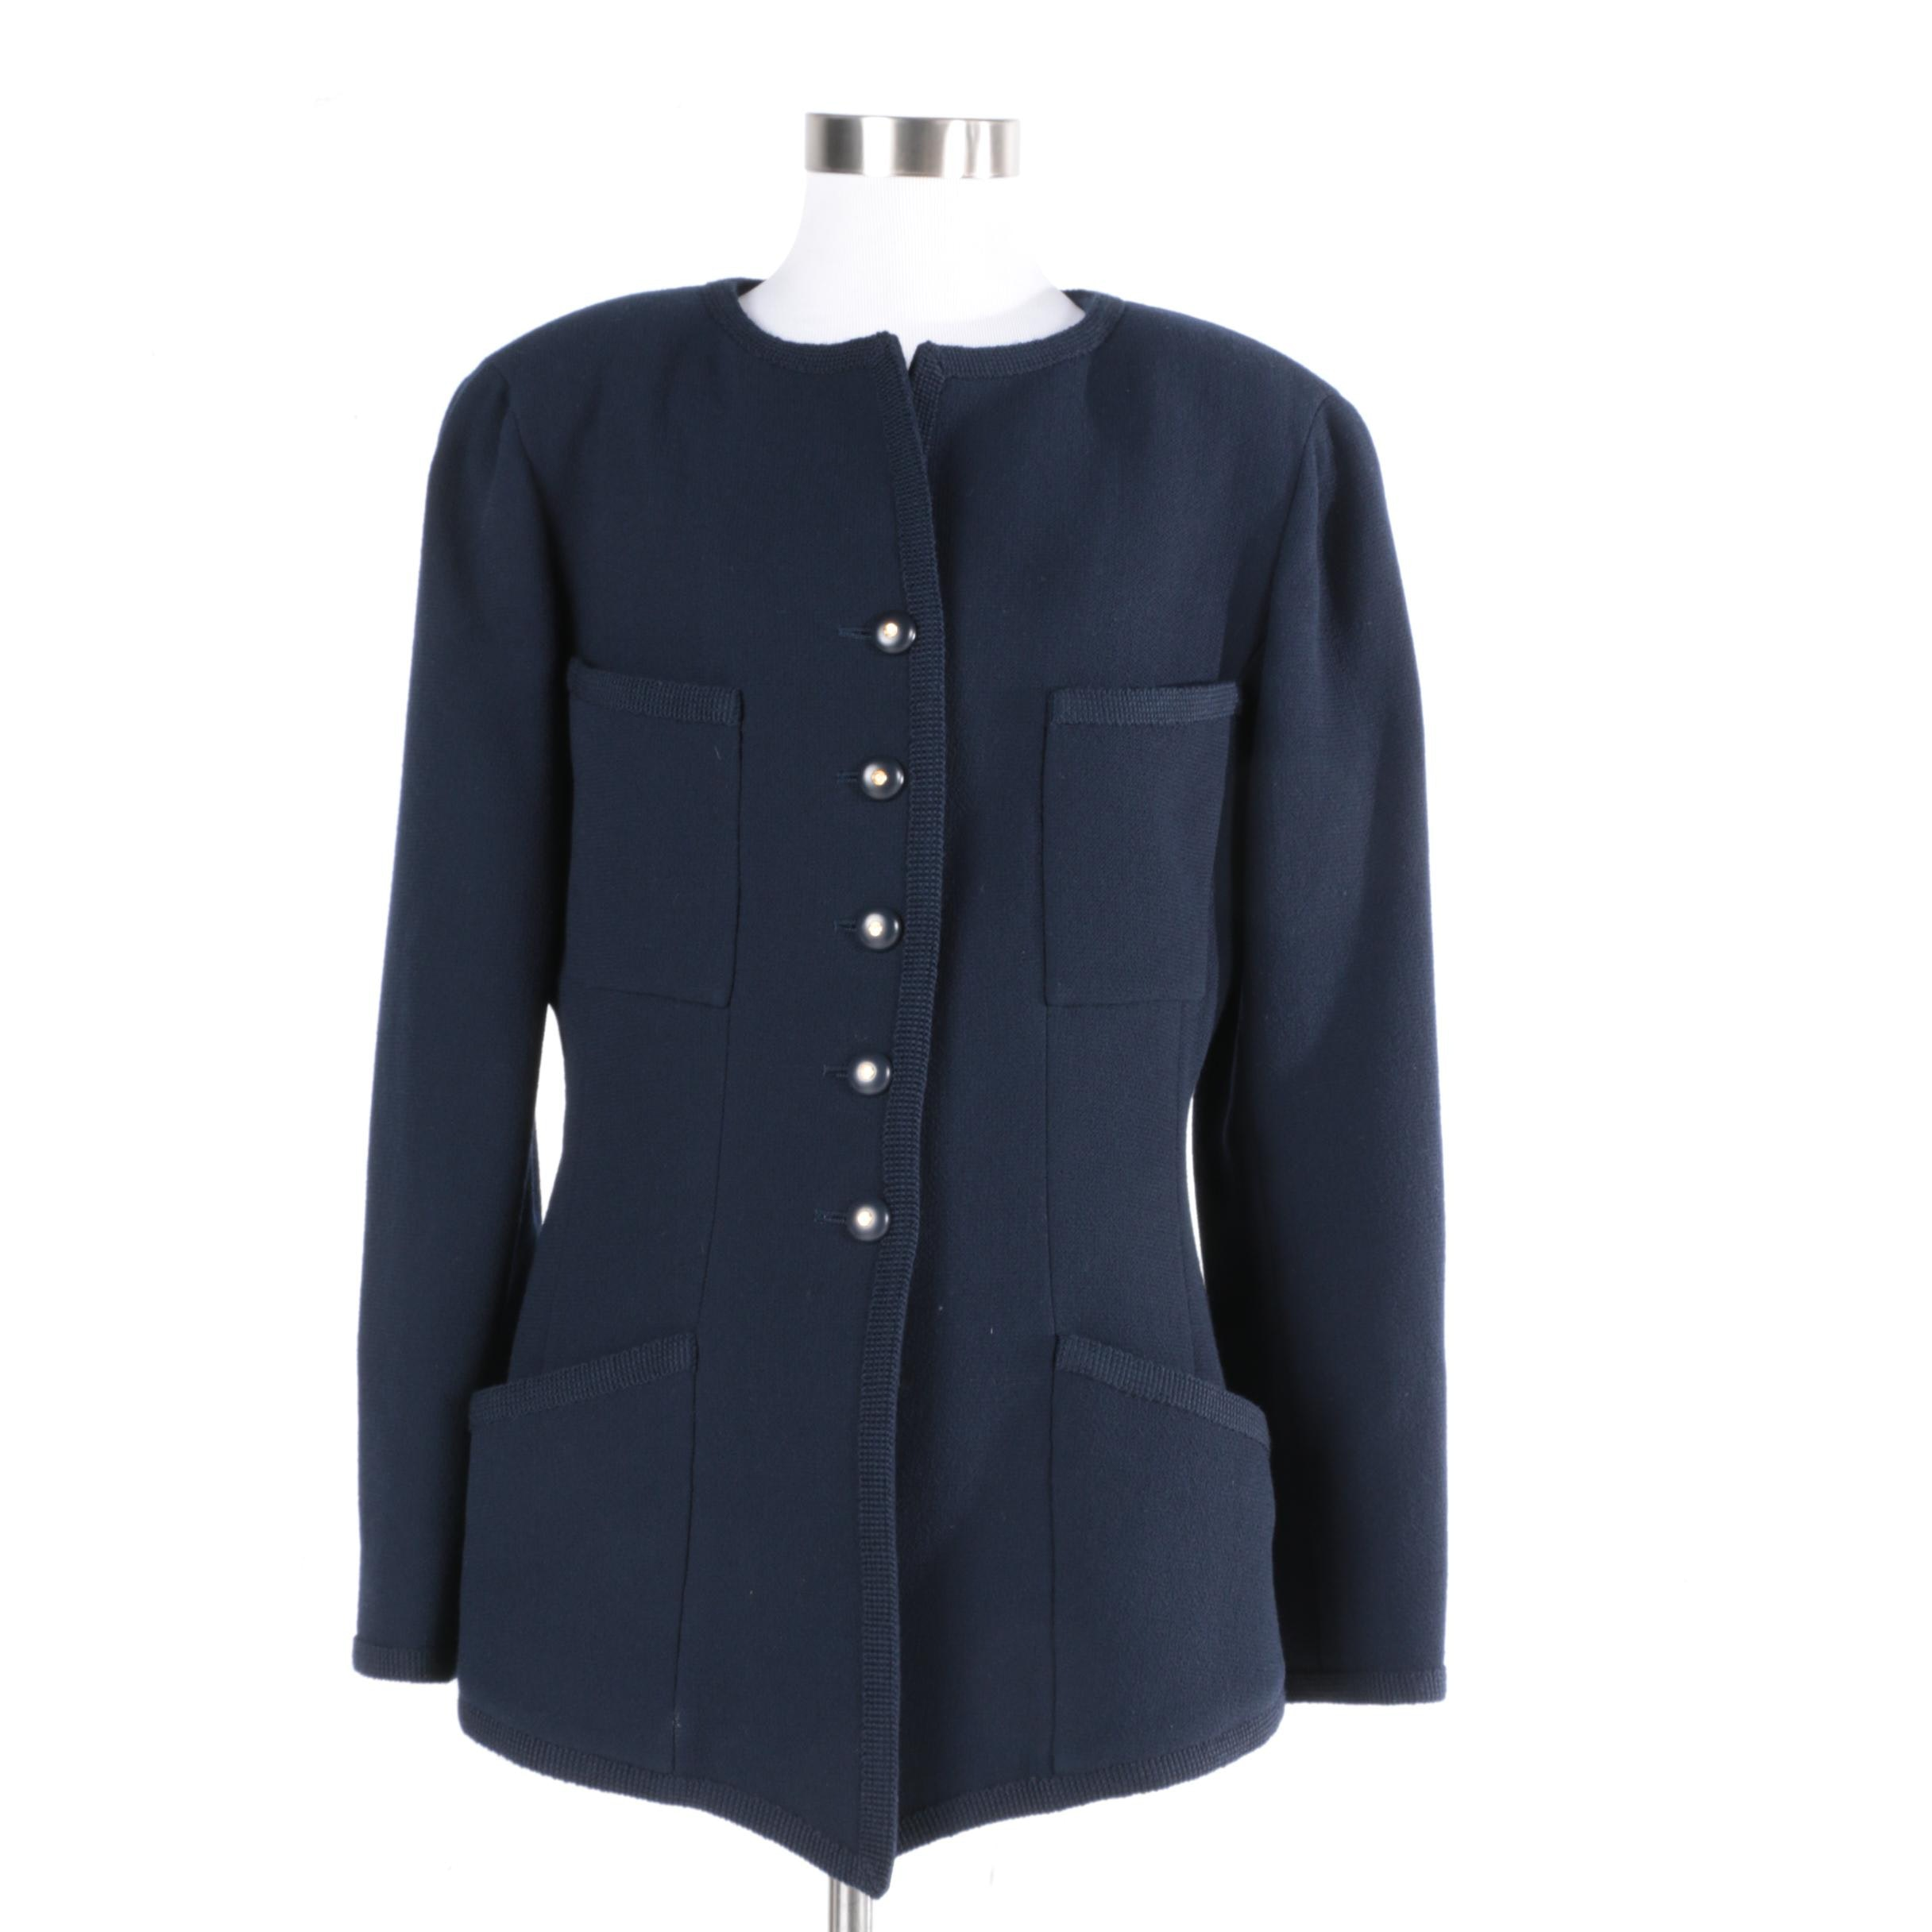 Chanel Boutique Navy Blue Wool Jacket